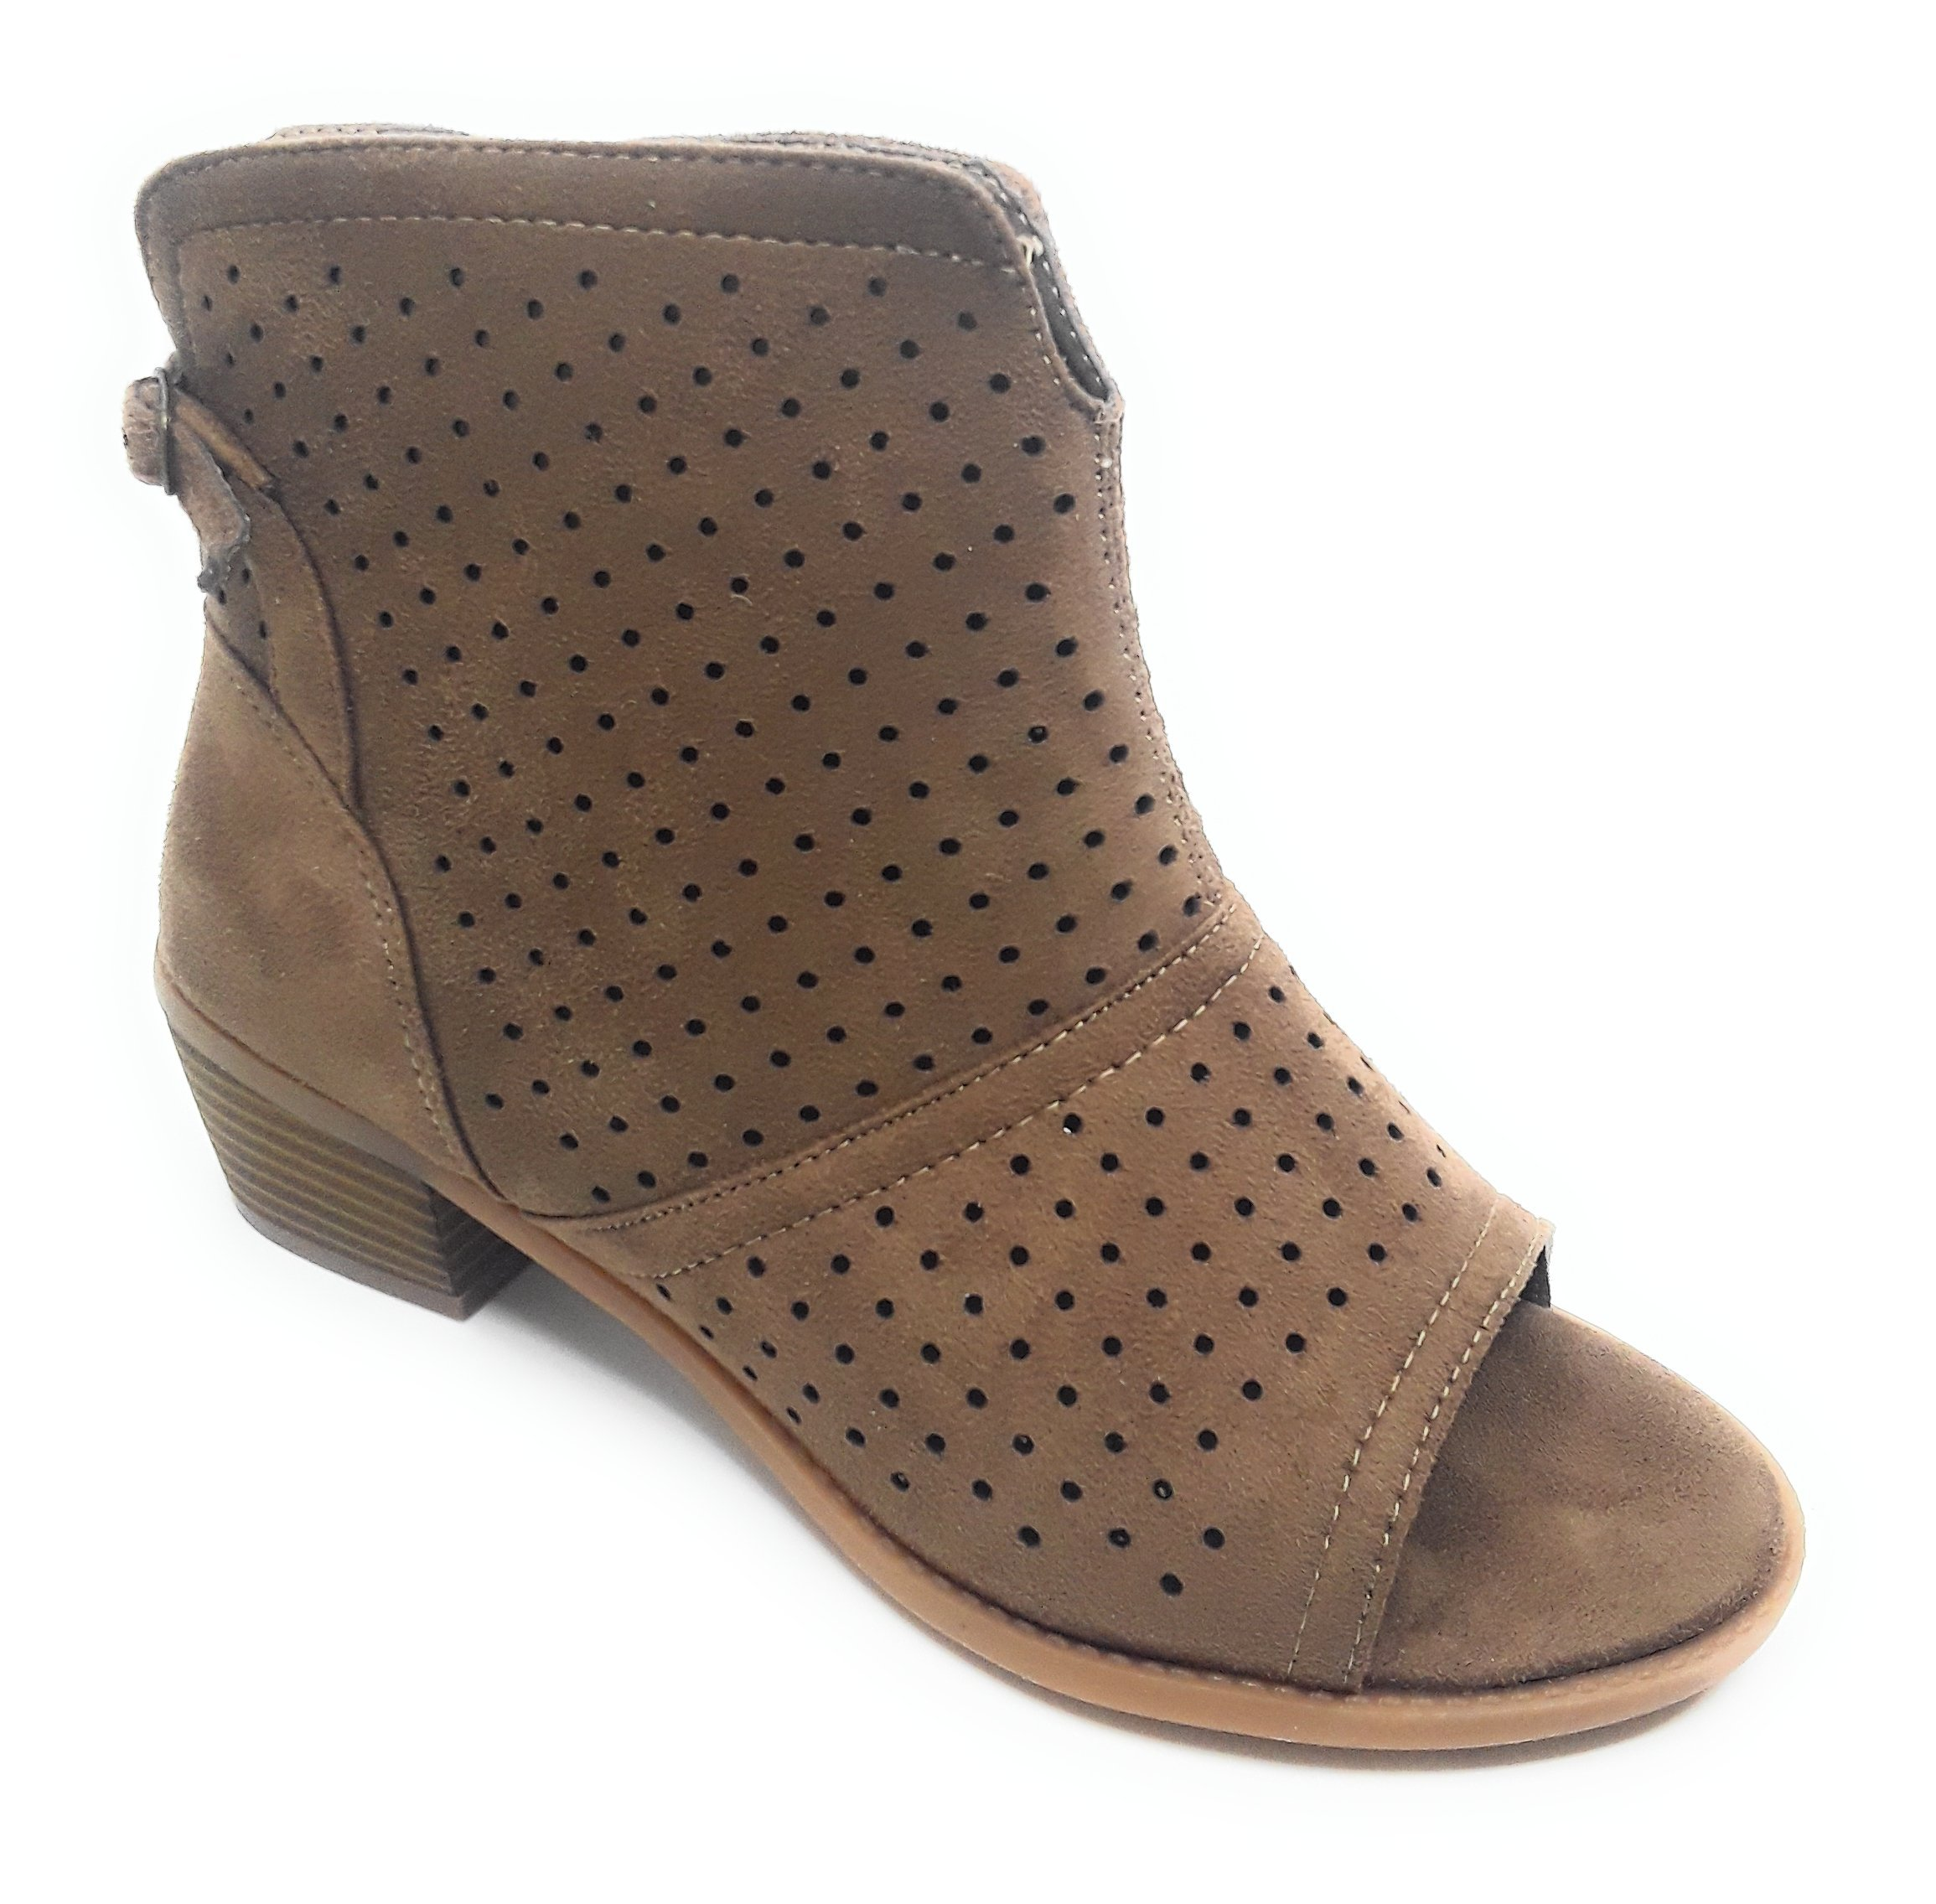 Size 12W Catherines Women's Open Toe Camel 1'' Heel Summer Boot